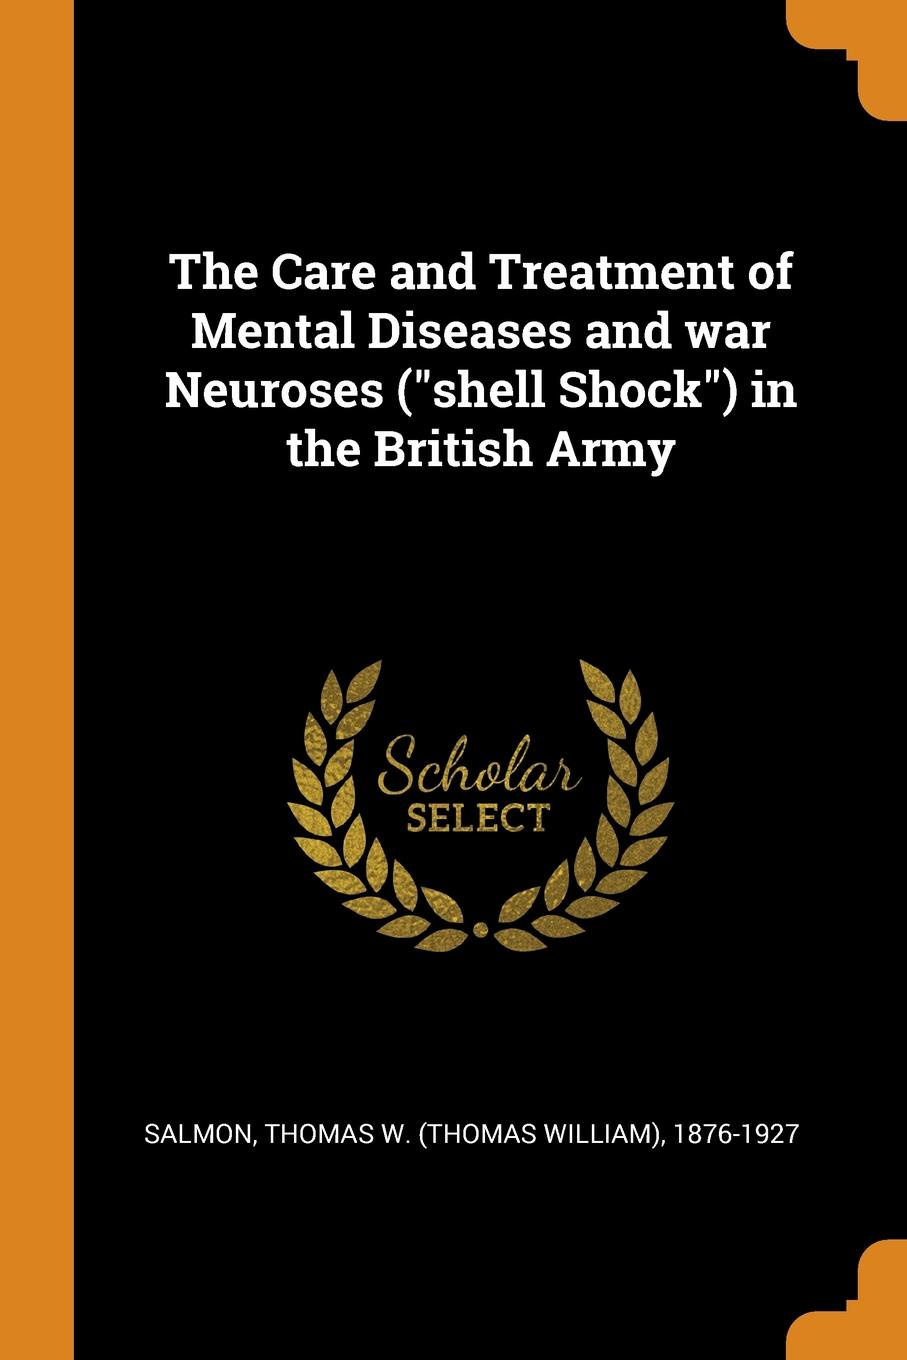 The Care and Treatment of Mental Diseases and war Neuroses (